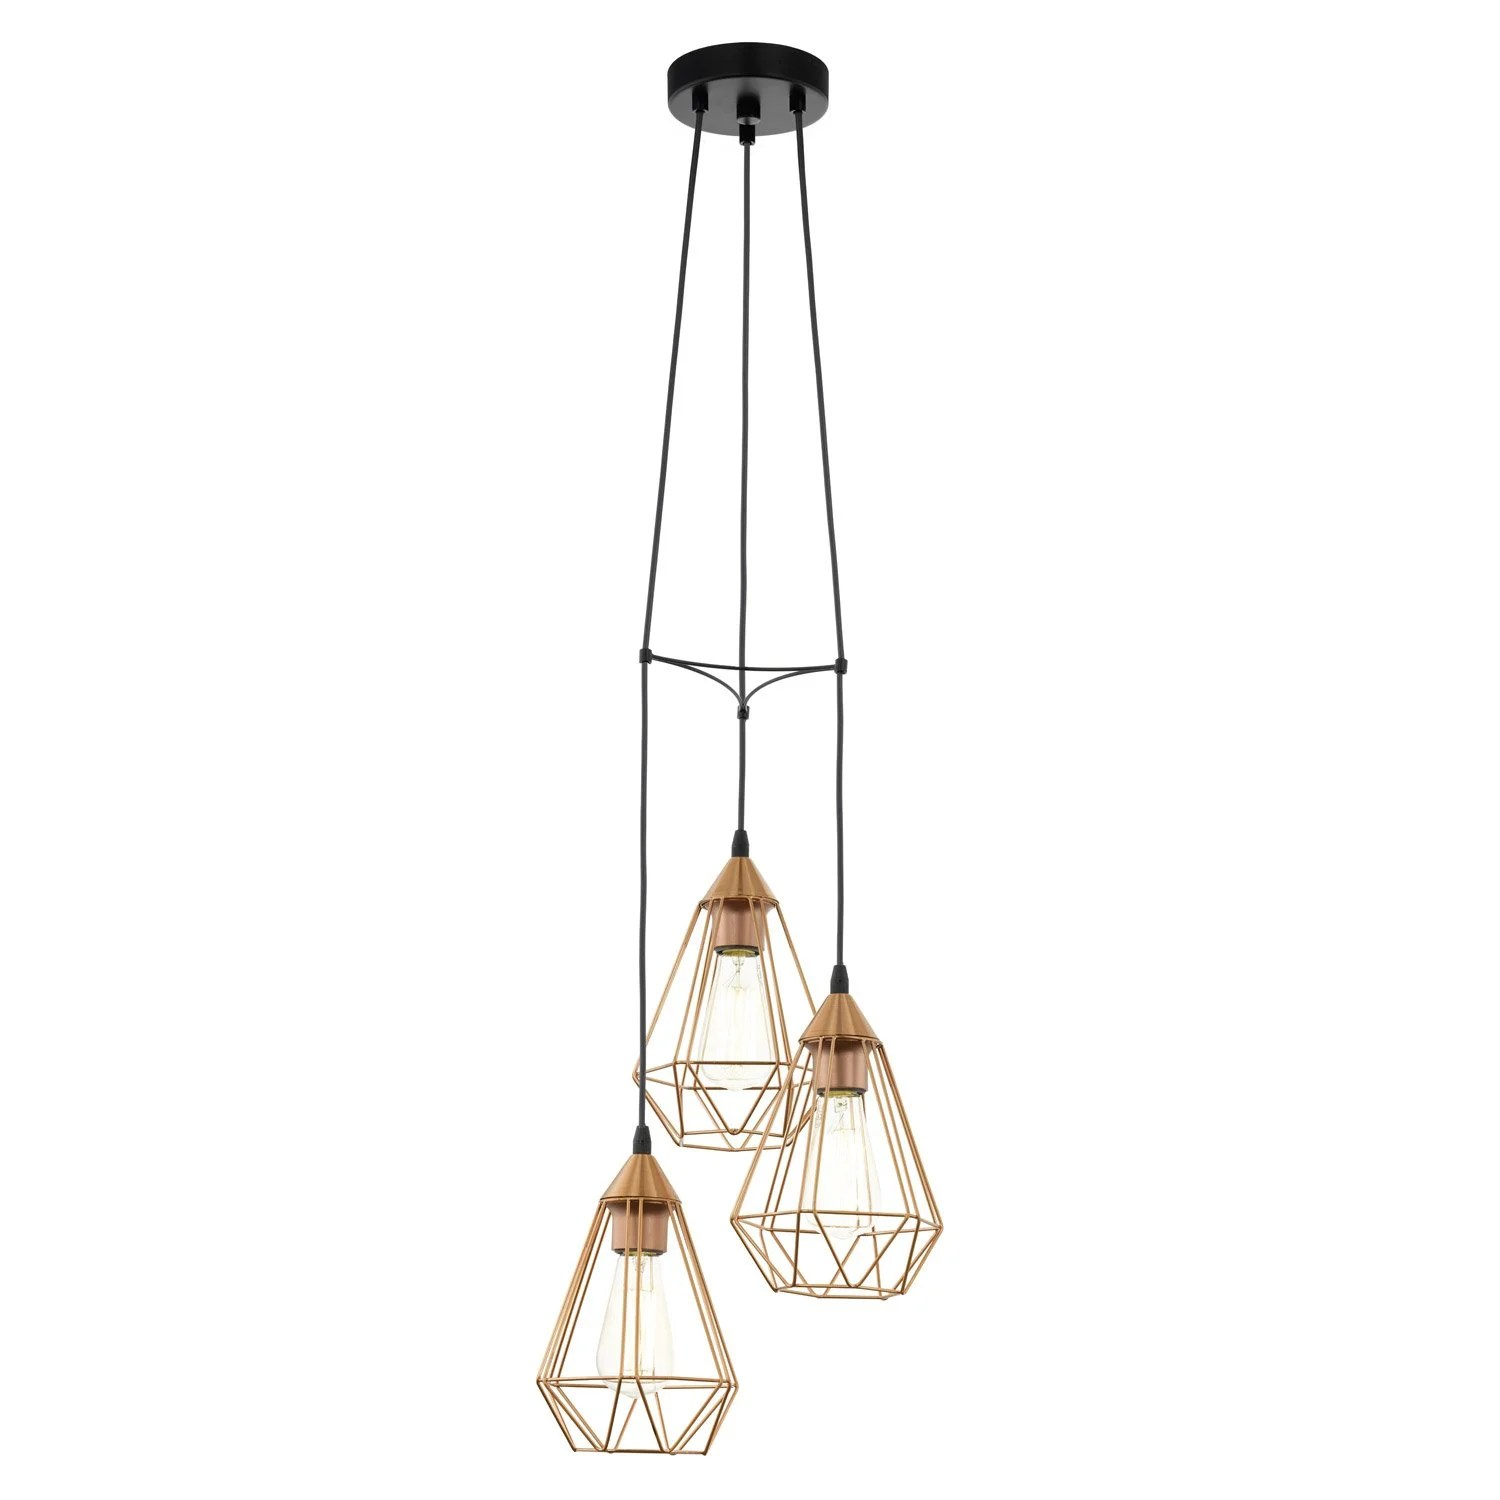 Suspension Metal Design Suspension E27 Design Tarbes Métal Cuivre 3 X 60 W Eglo